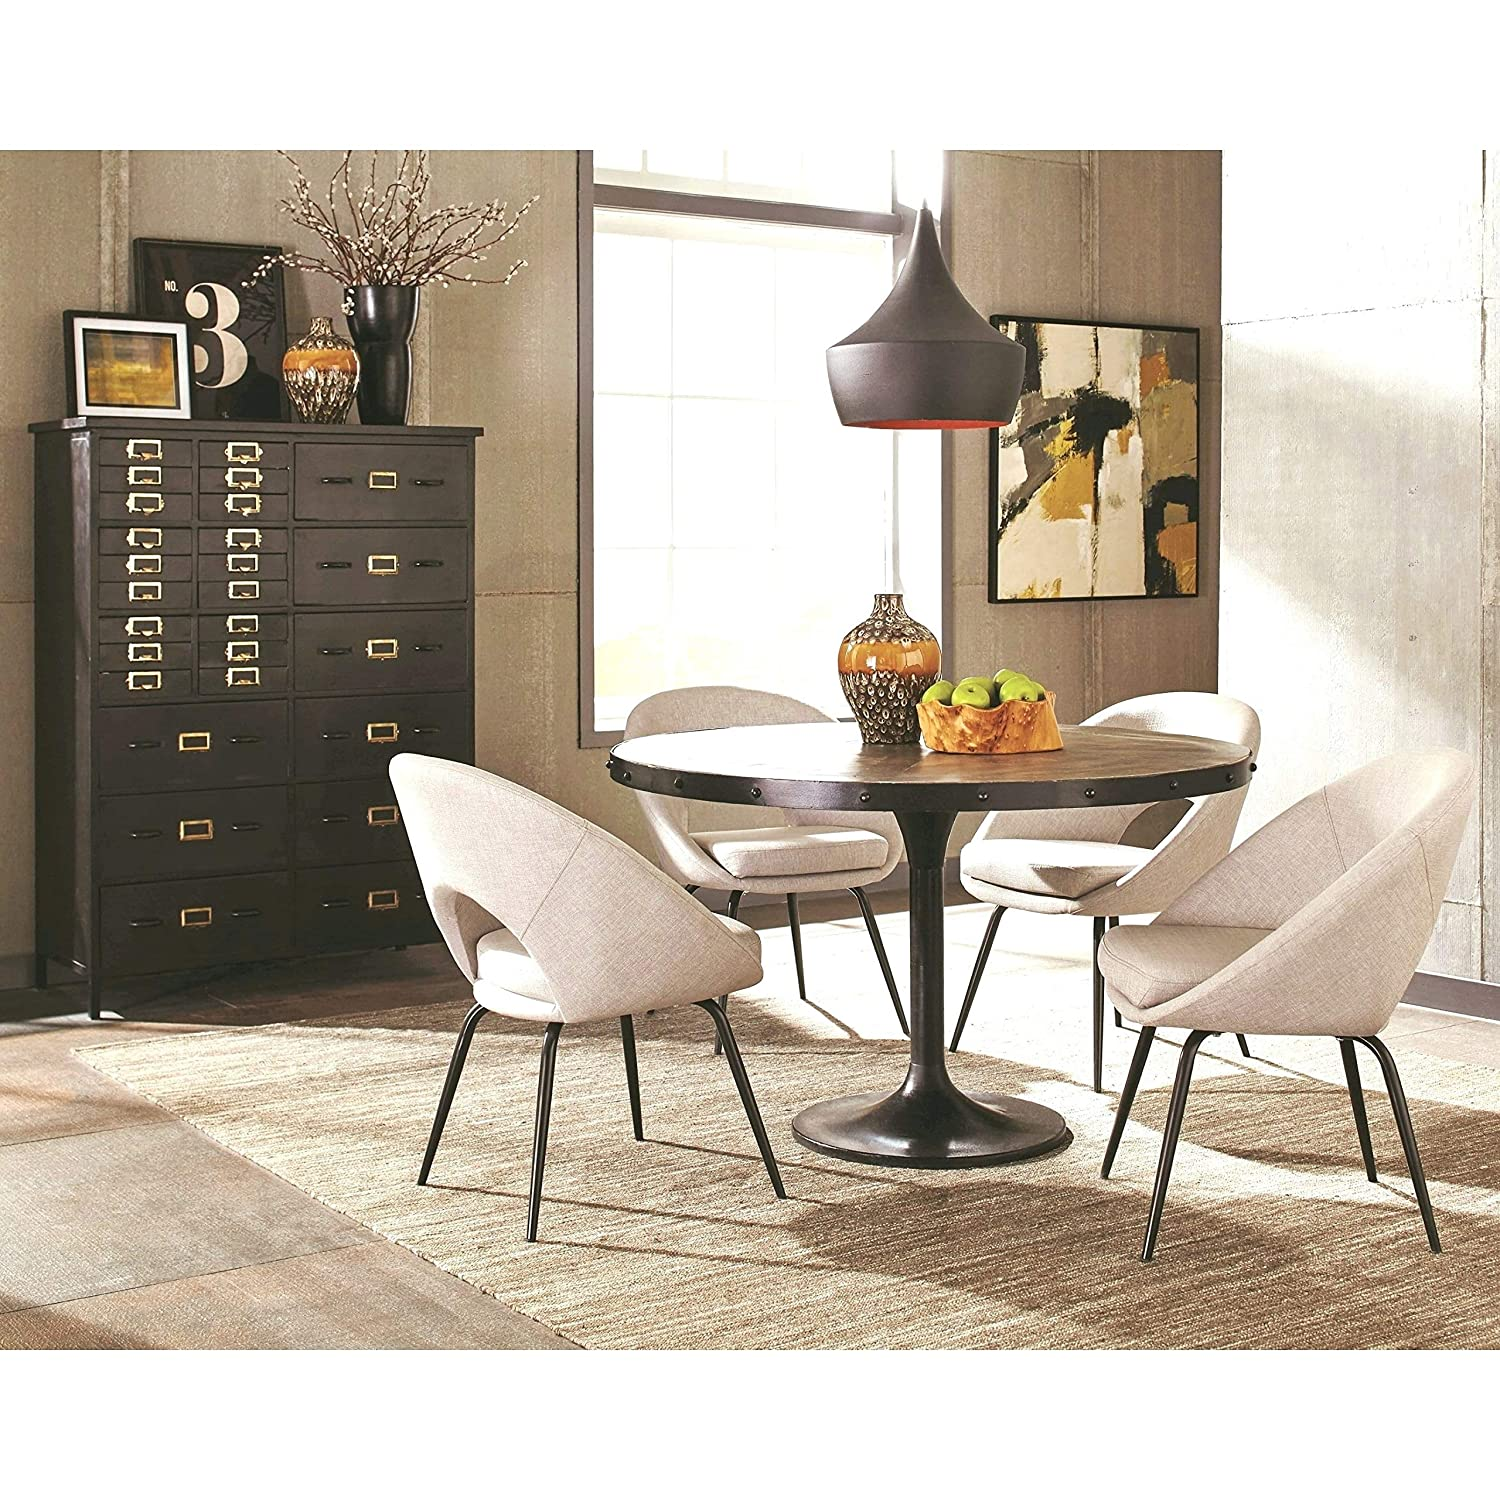 Charmant Amazon.com   A Line Furniture Vintage Inspired Antique Round Dining Set  With Storage Chest 1 Table, 4 Chairs, 1 Chest   Table U0026 Chair Sets